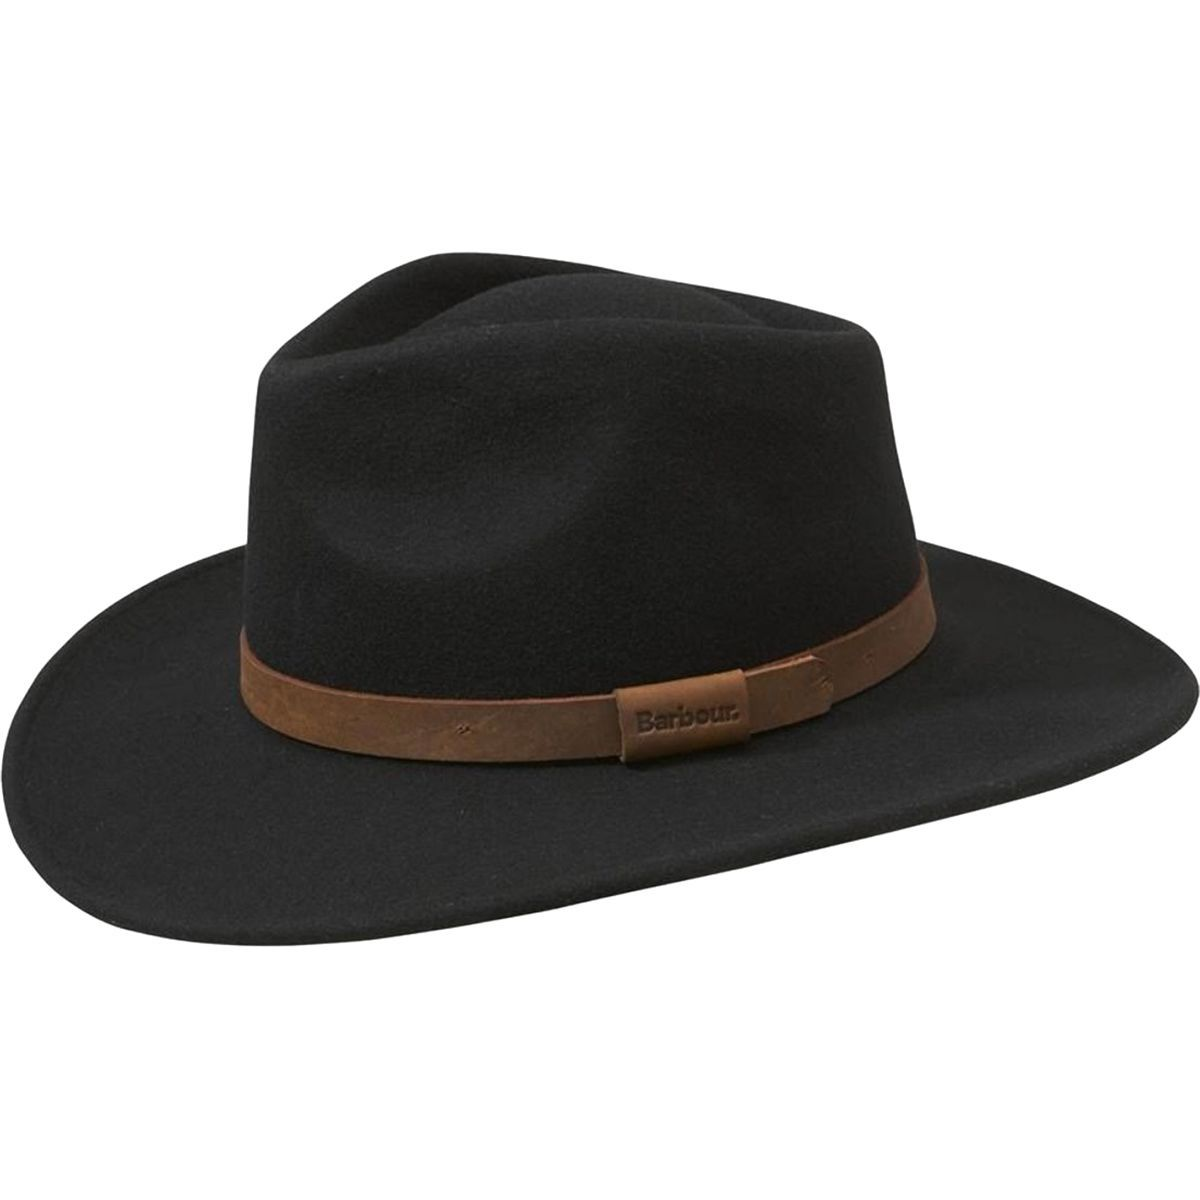 barbour unisex leather bushman hat